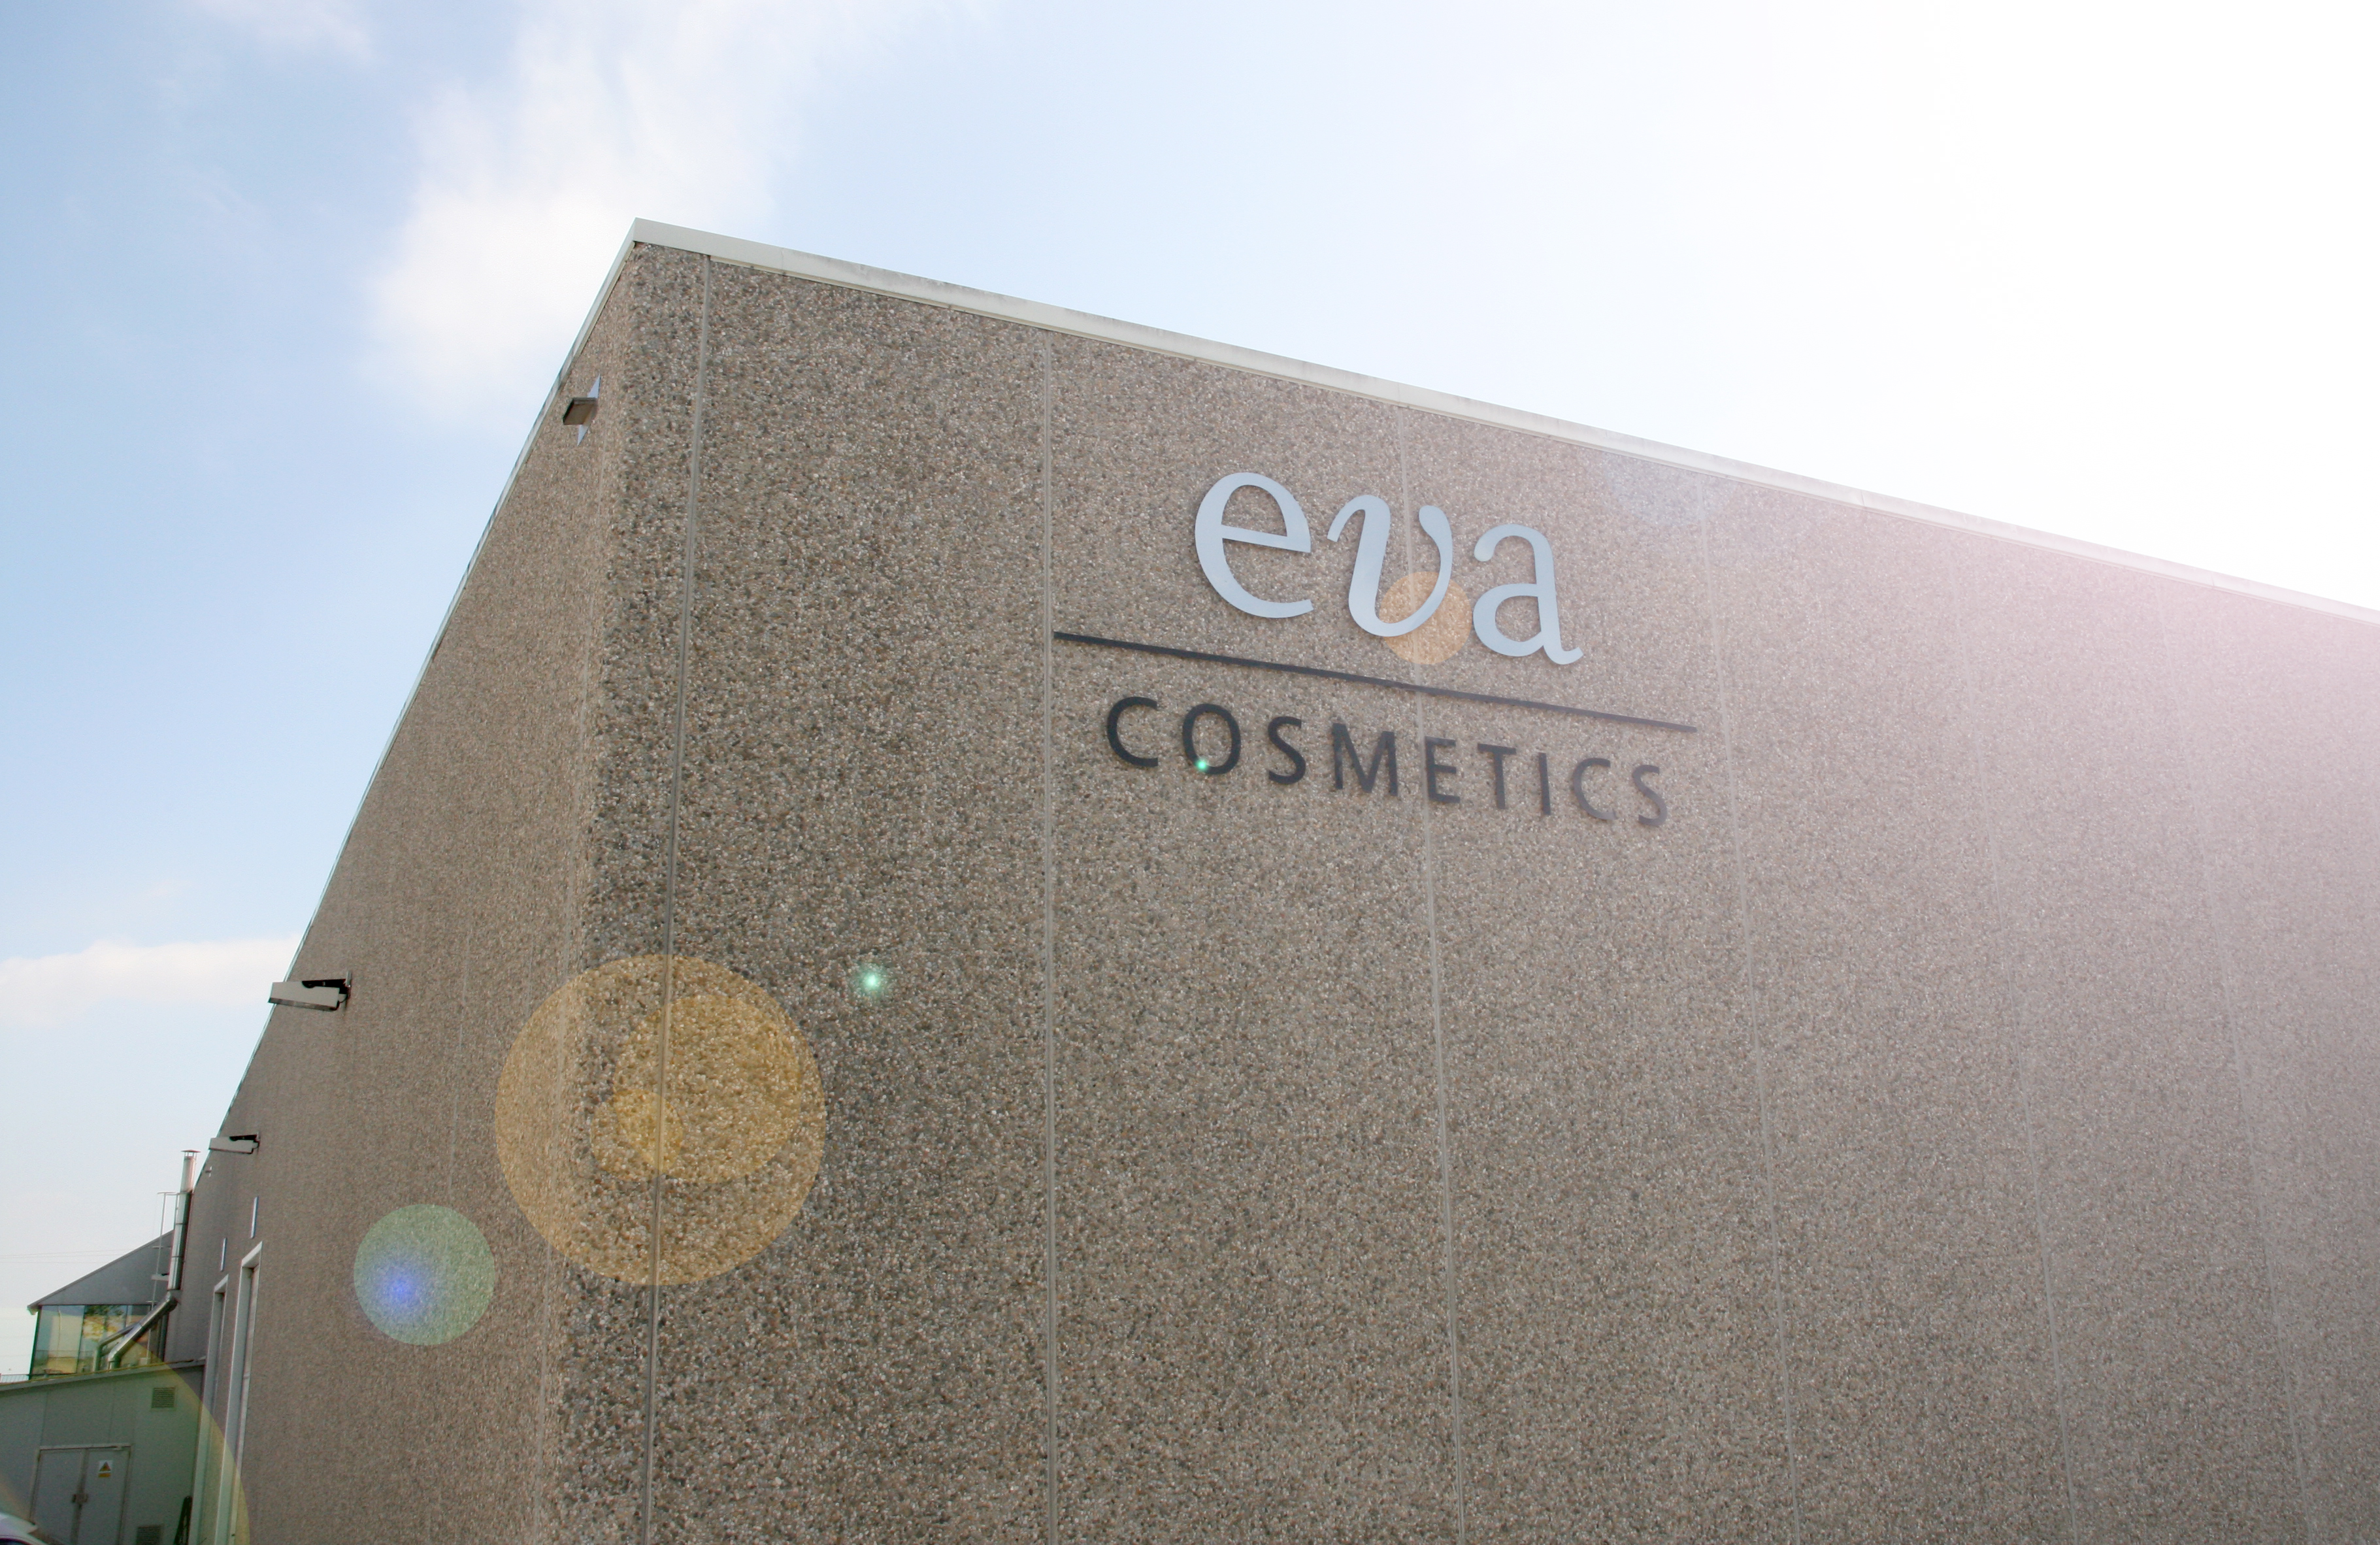 Eva Cosmetics factory